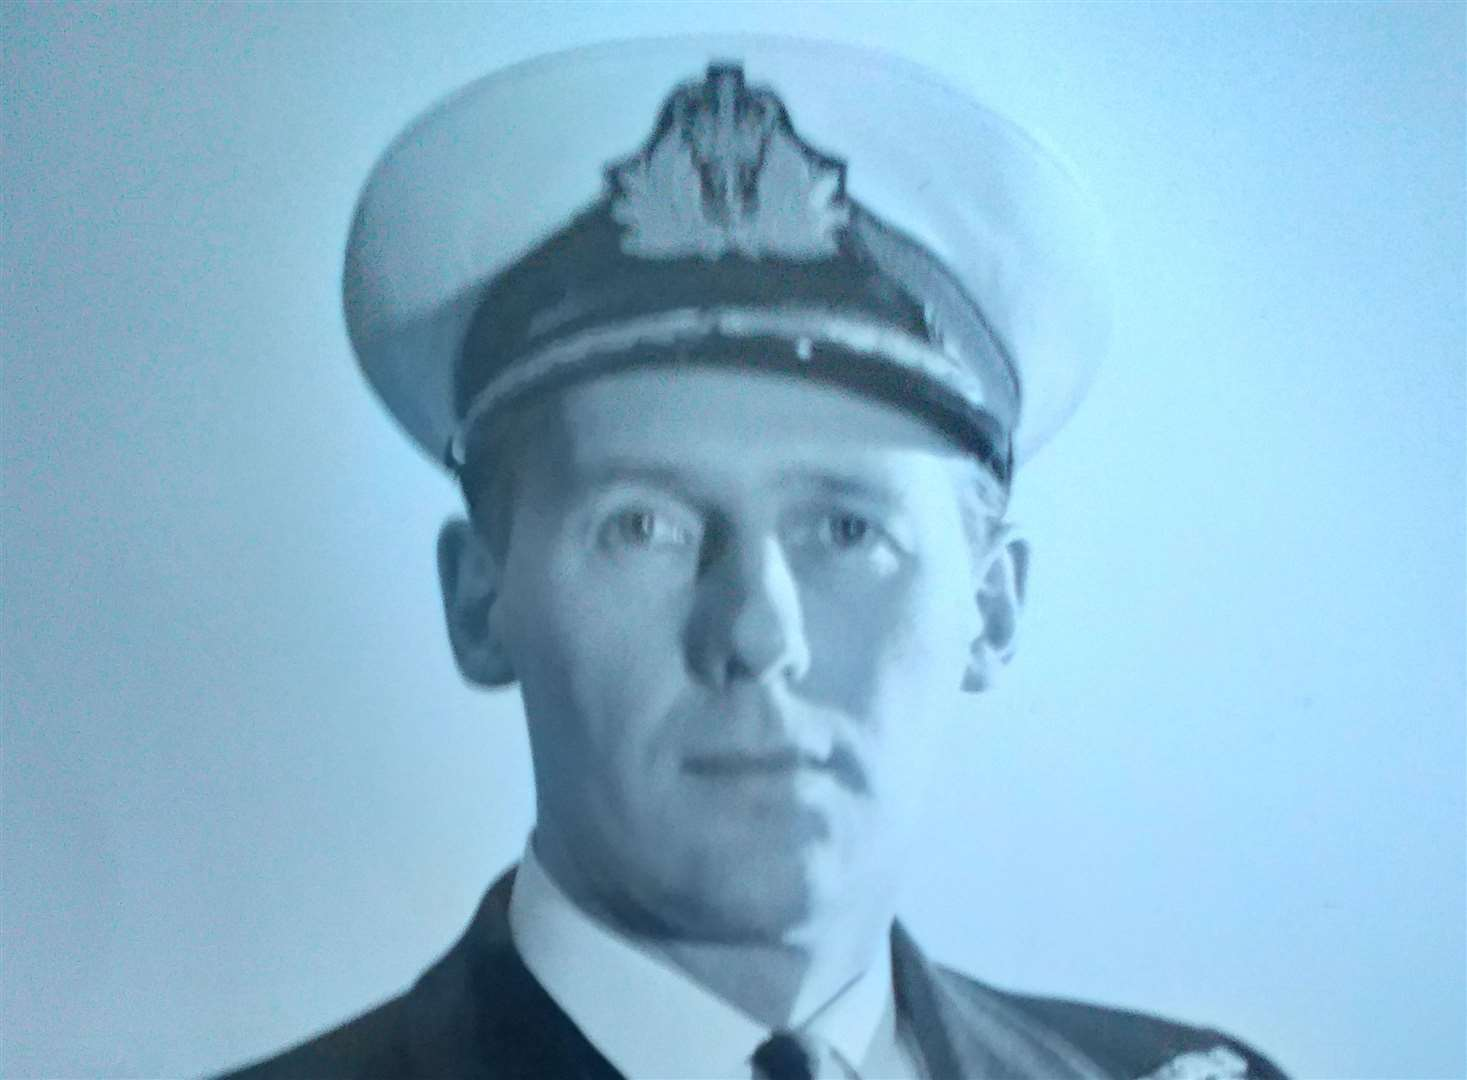 Pictured while Captain of Galatea in 1967